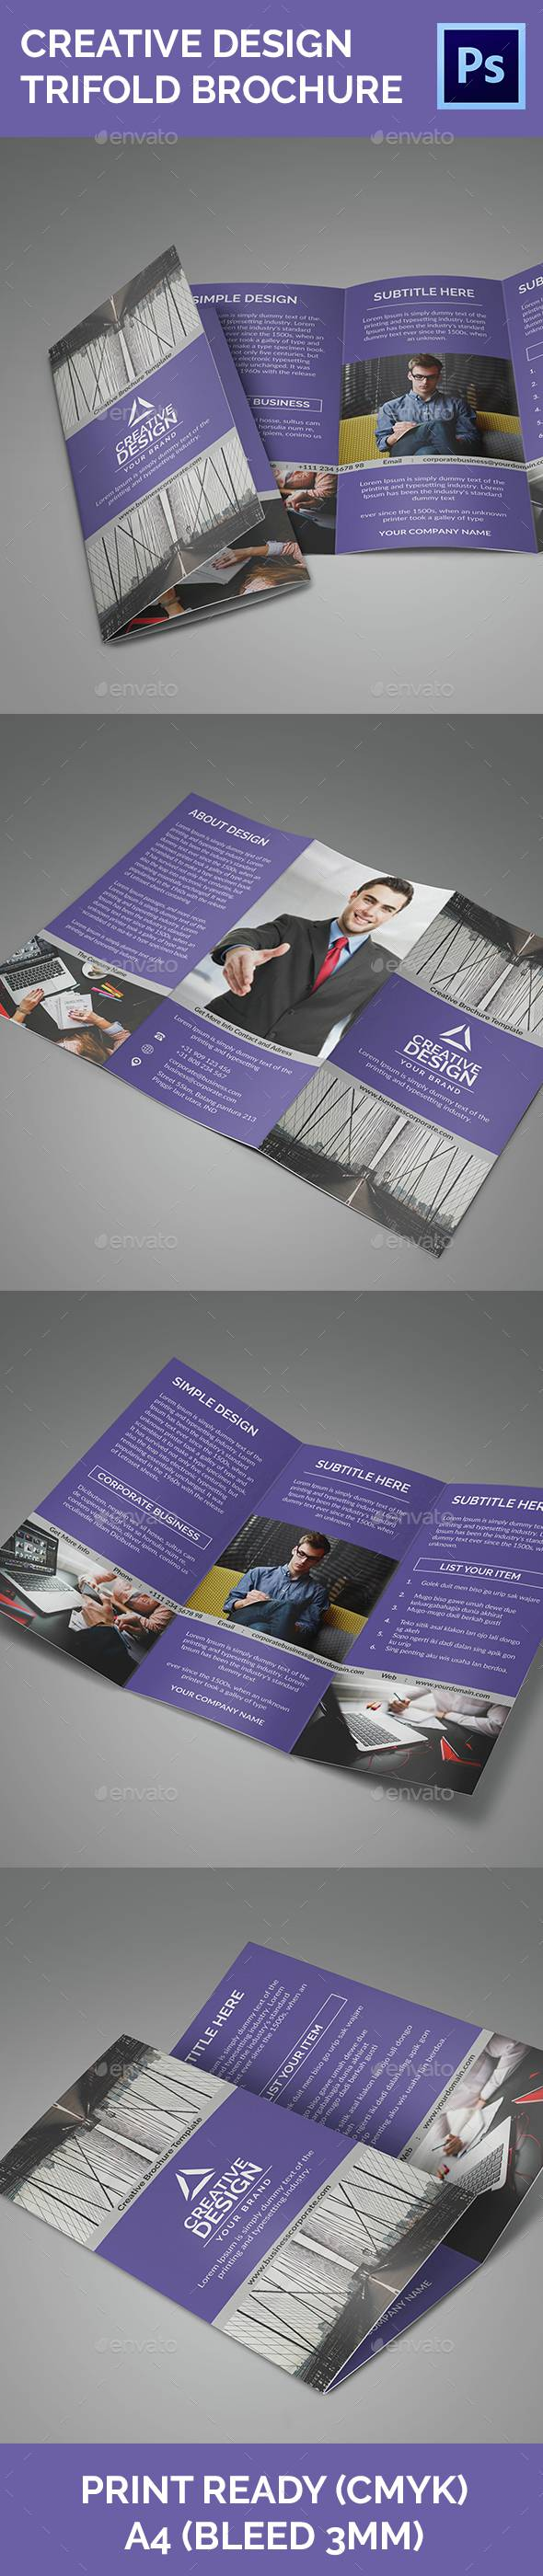 Creative Design Vol 2 Trifold Brochure